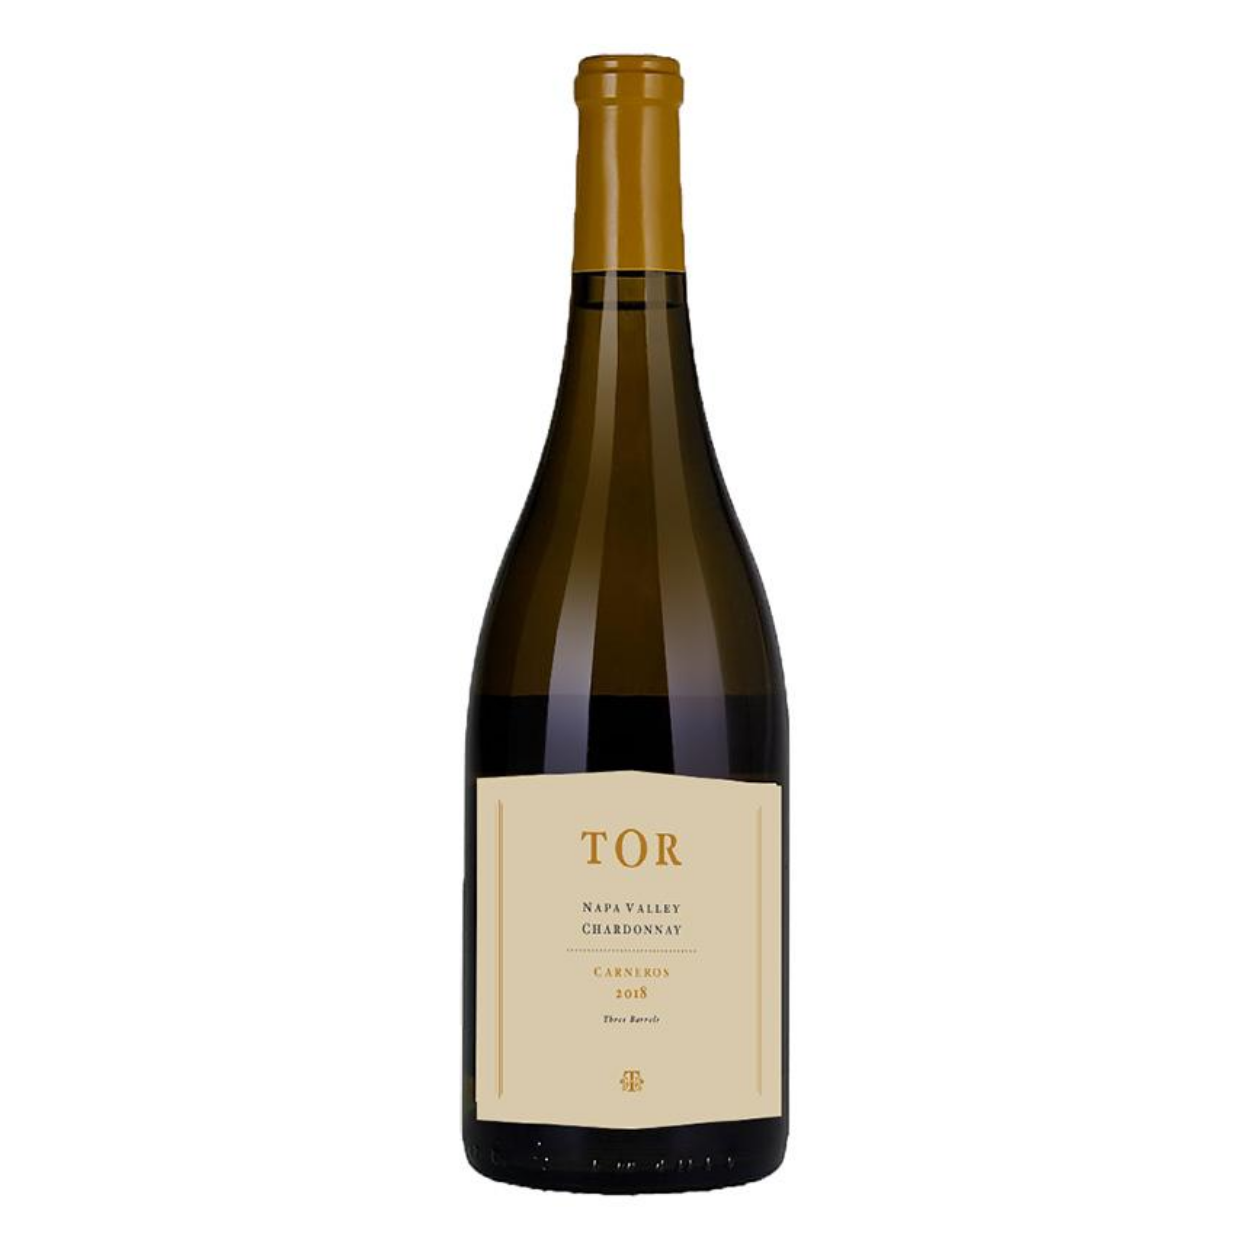 2018 Tor Wines Chardonnay Carneros USA - The Wine Connection